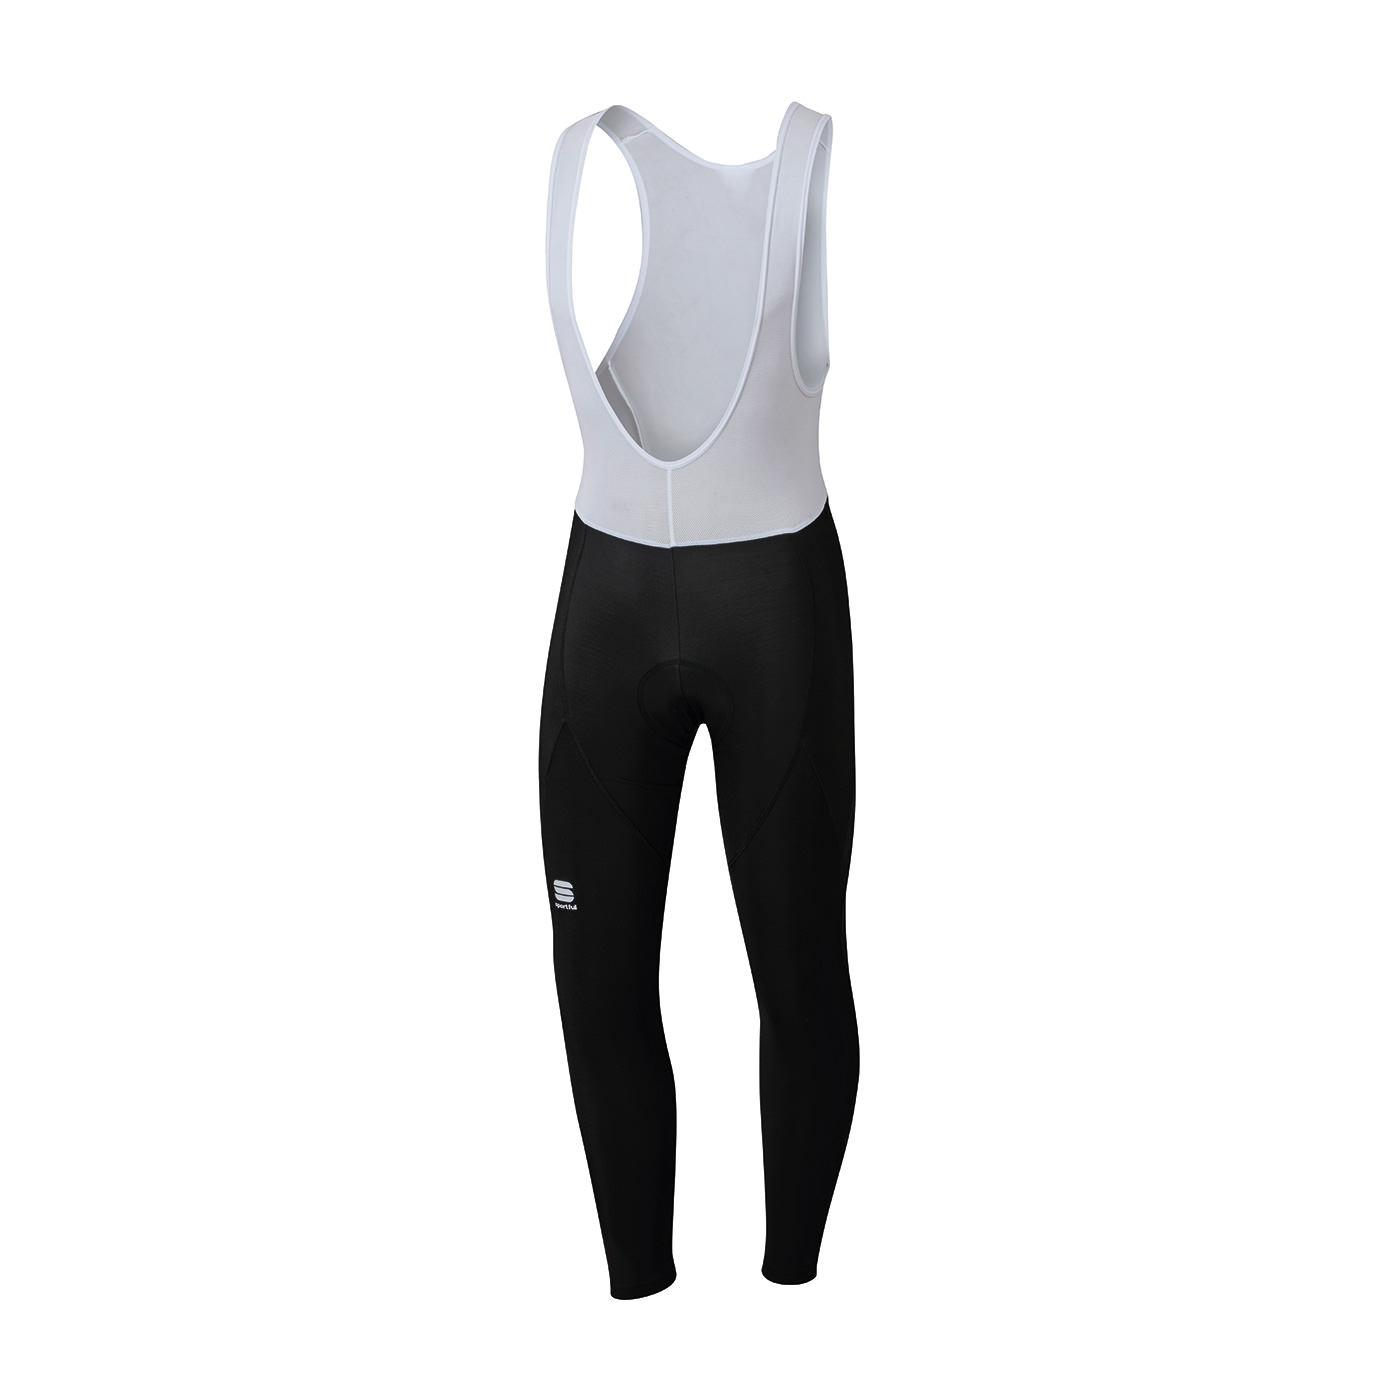 Sportful Giro Bib Tight / Fietsbroek Zwart